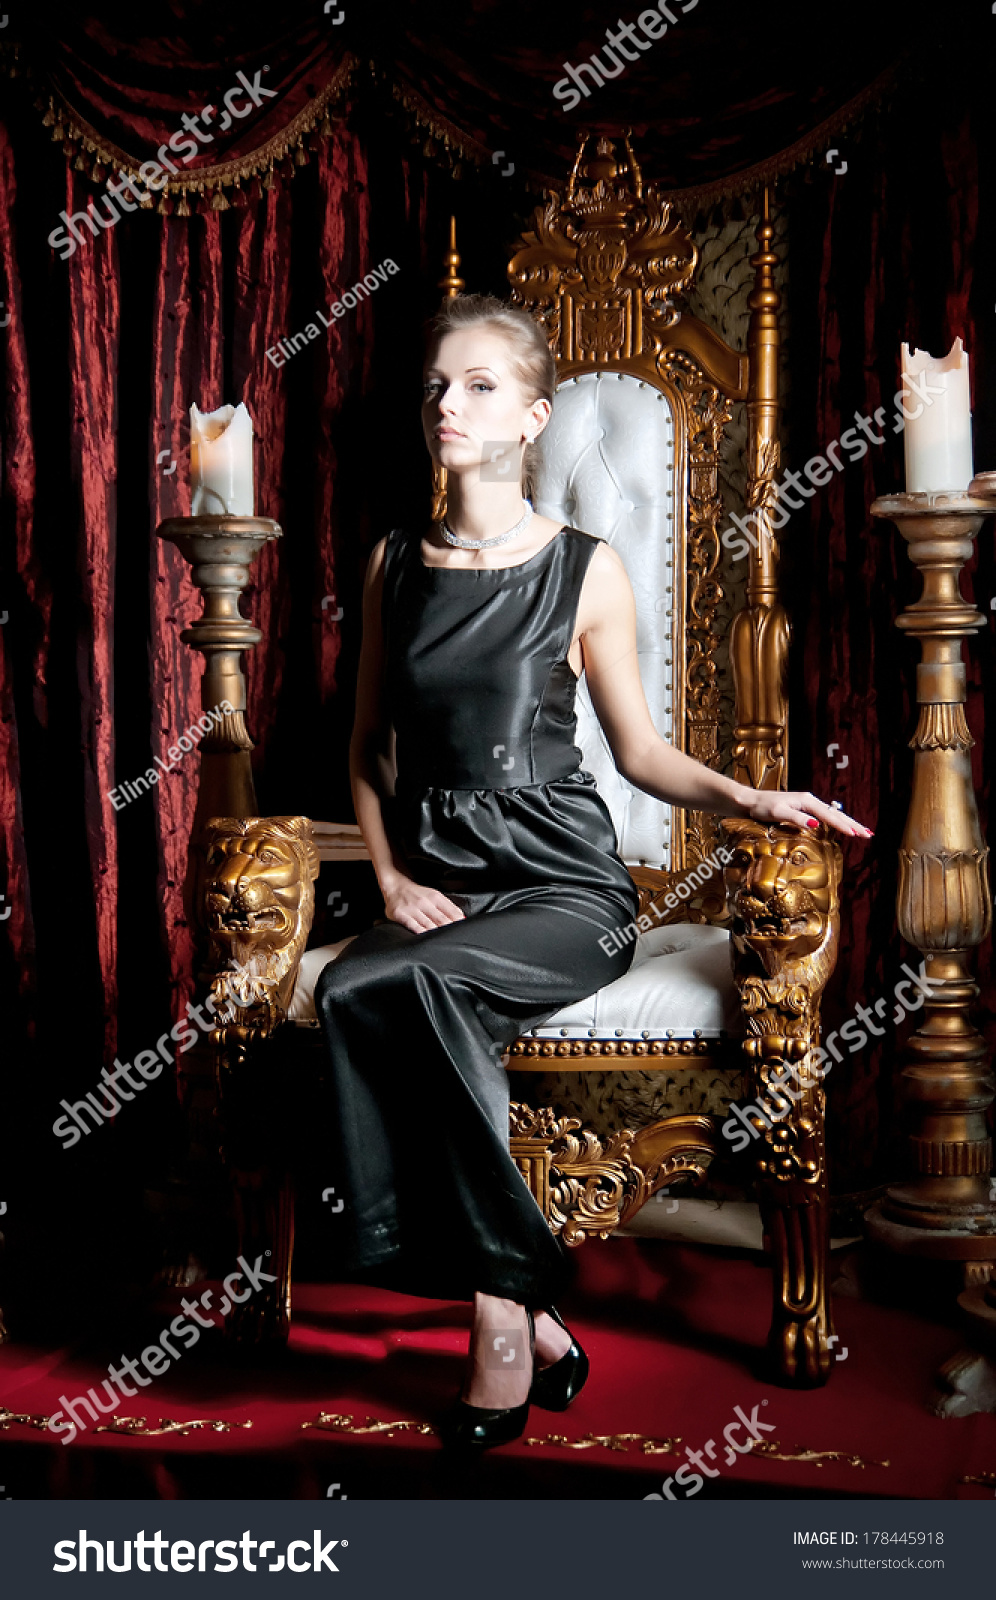 Woman Sitting On Throne Stock Photo 178445918 Shutterstock